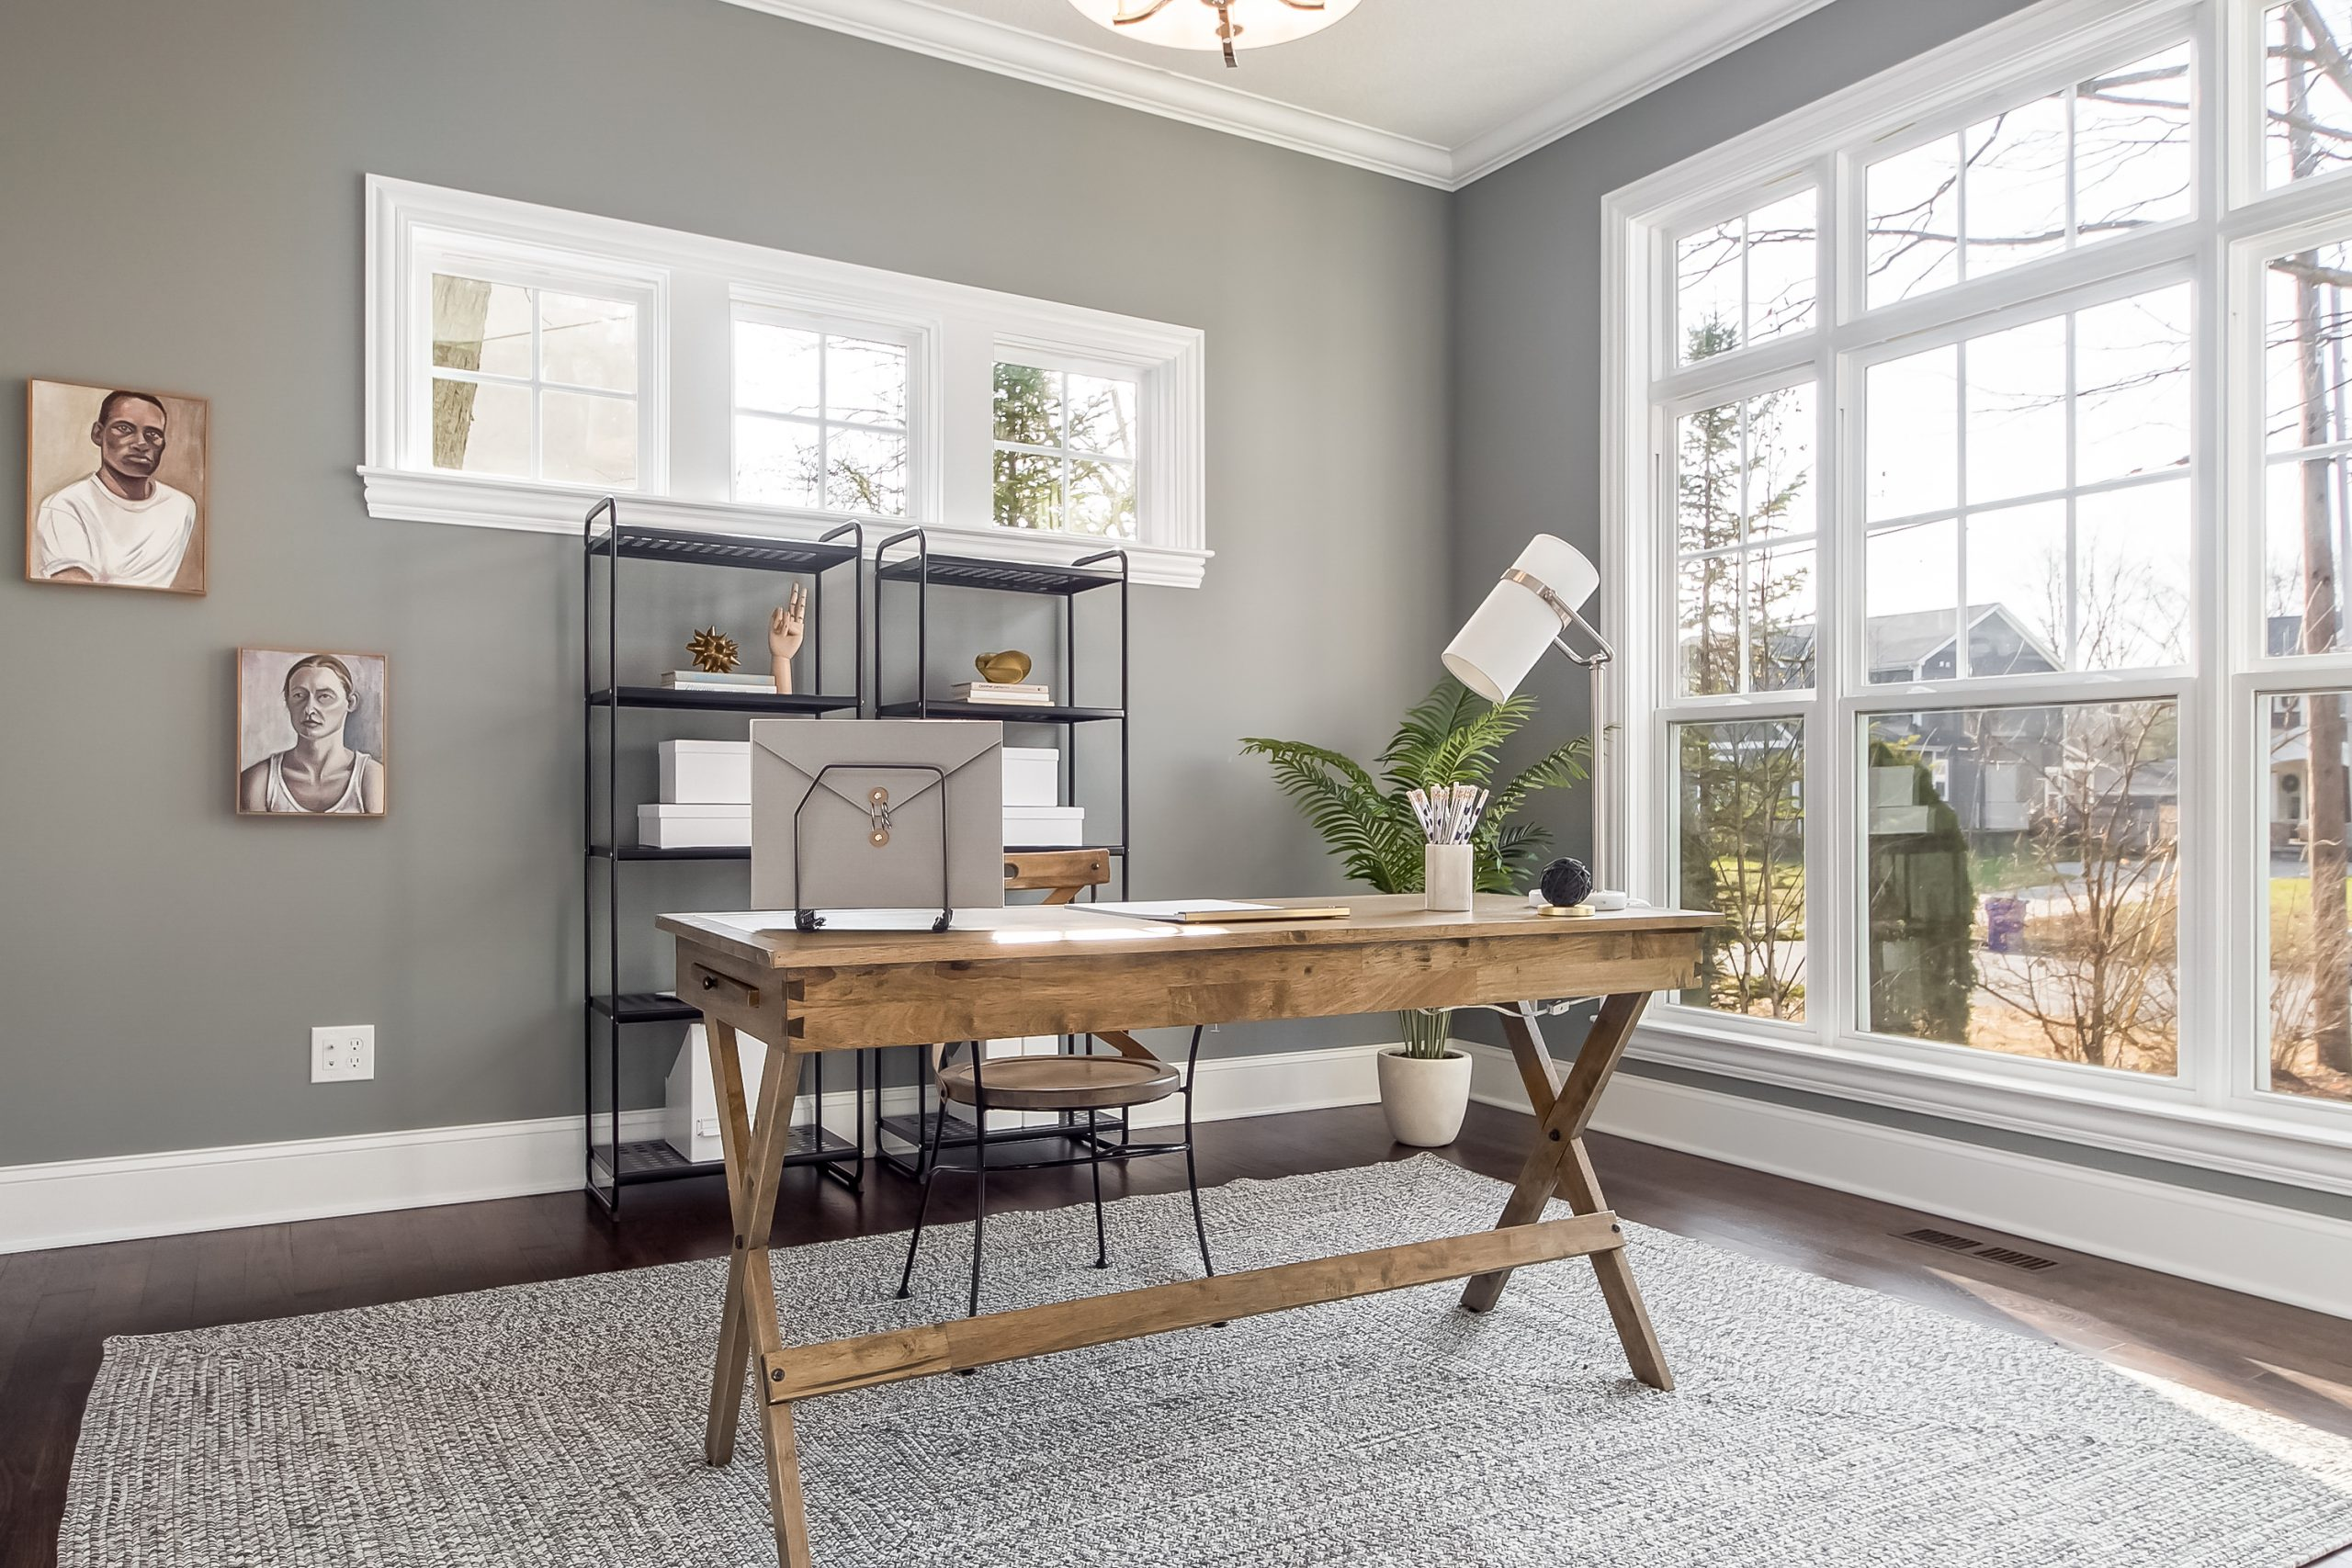 5 Tips for Creating a Private Workspace in Your Home